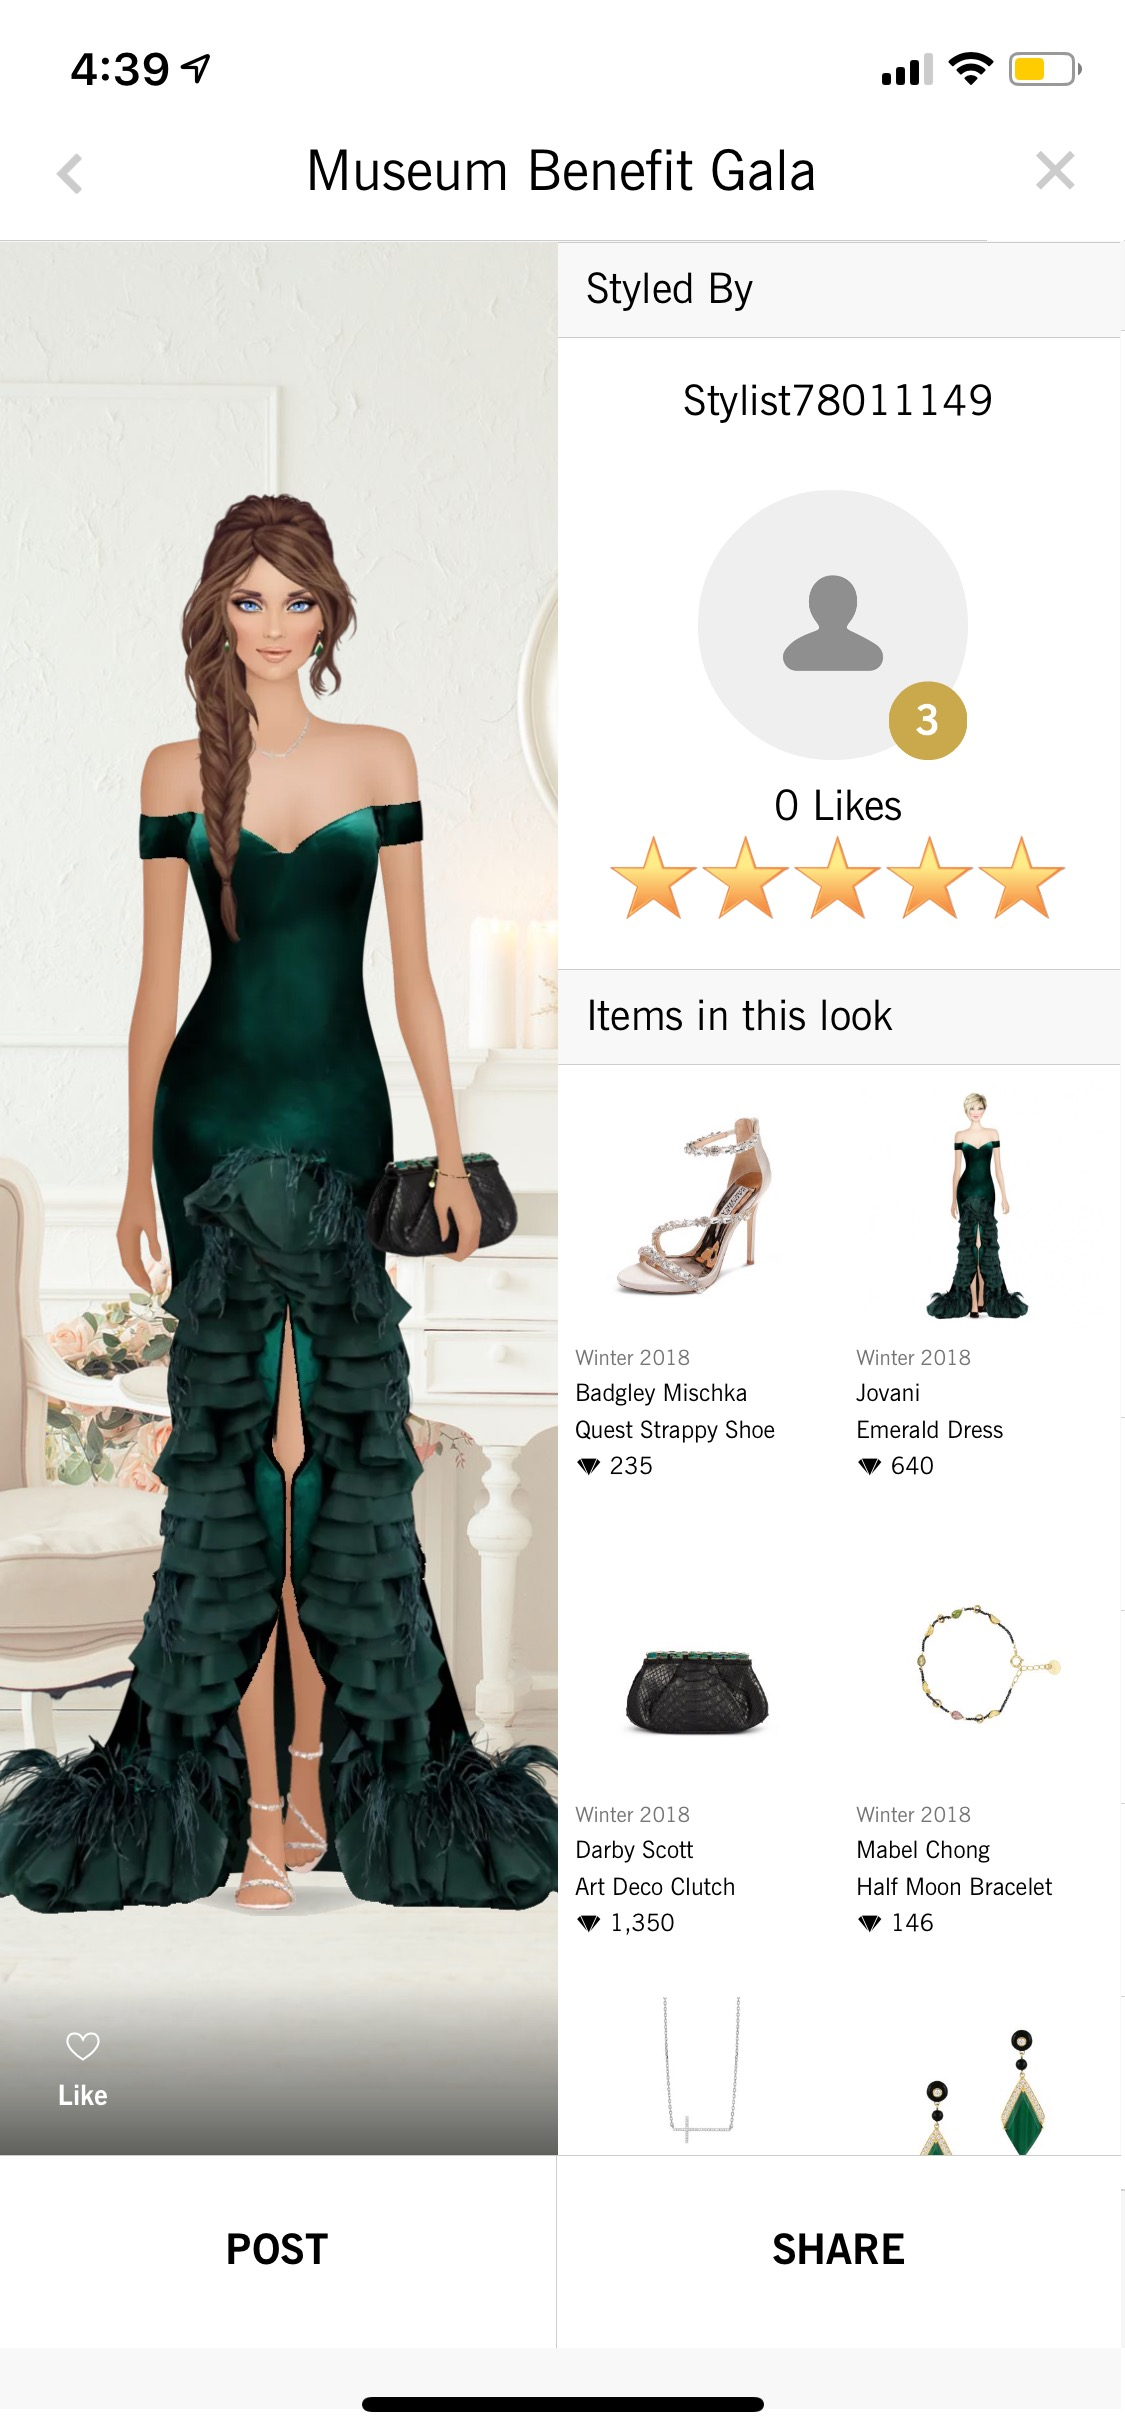 Covet Fashion Jet Set Help - The Best Fashion In 2018